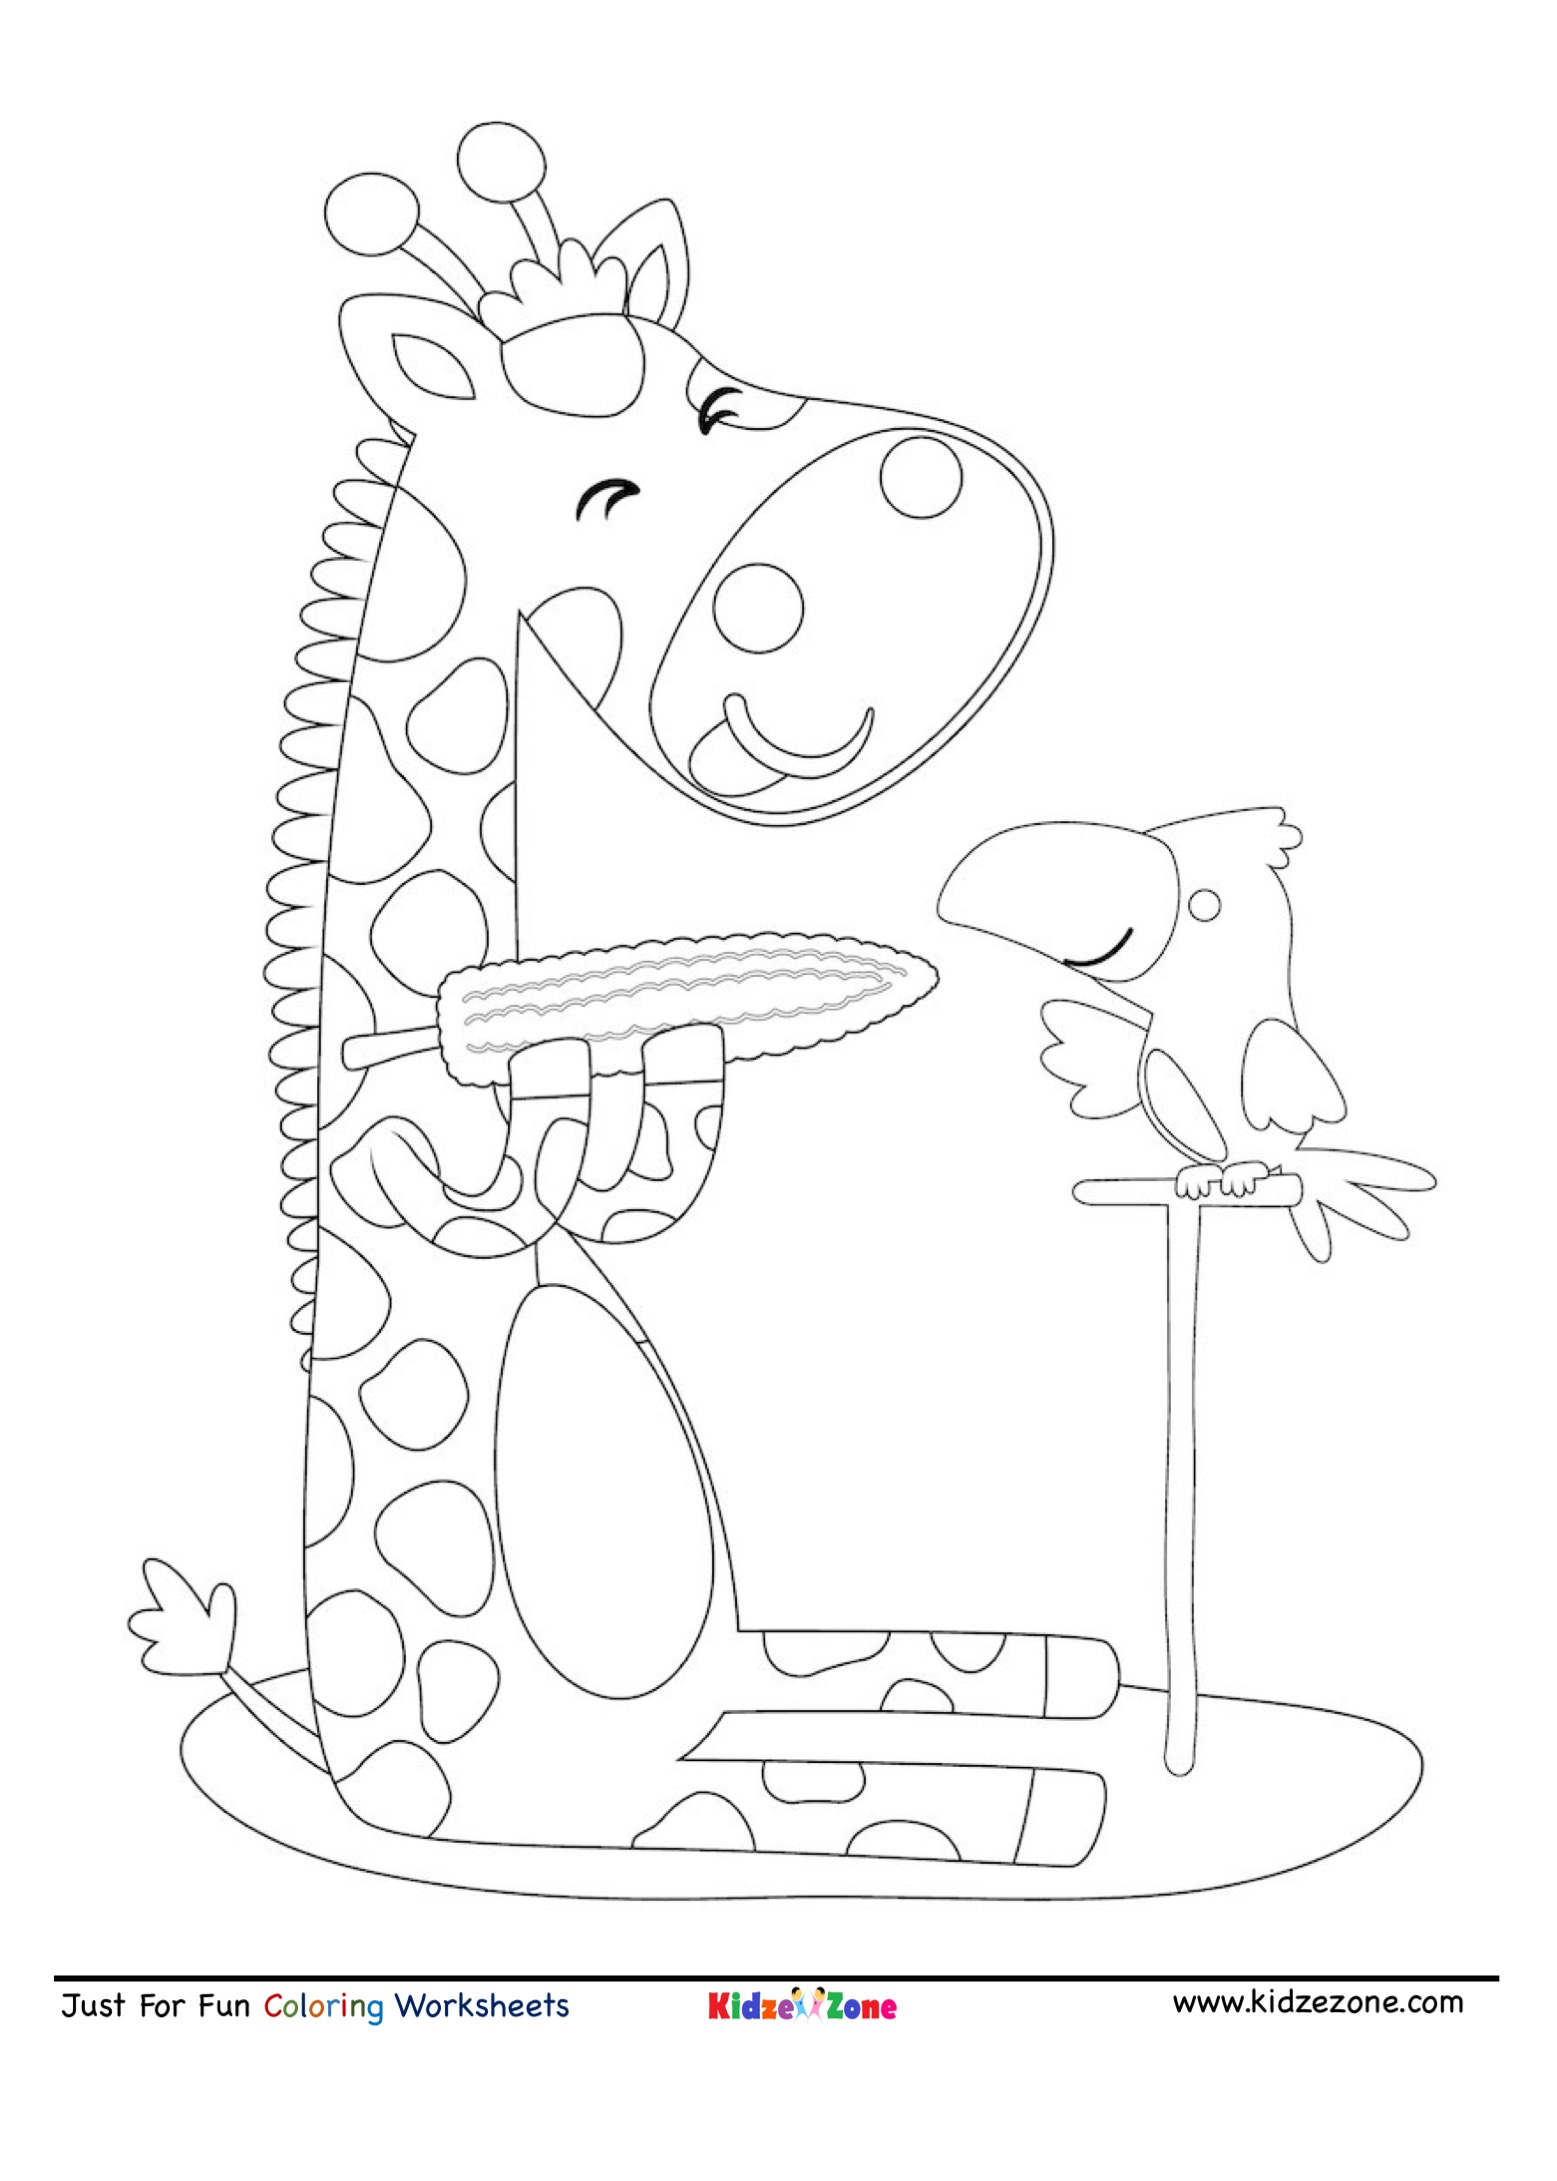 Giraffe Eating Corn Cartoon Coloring Page